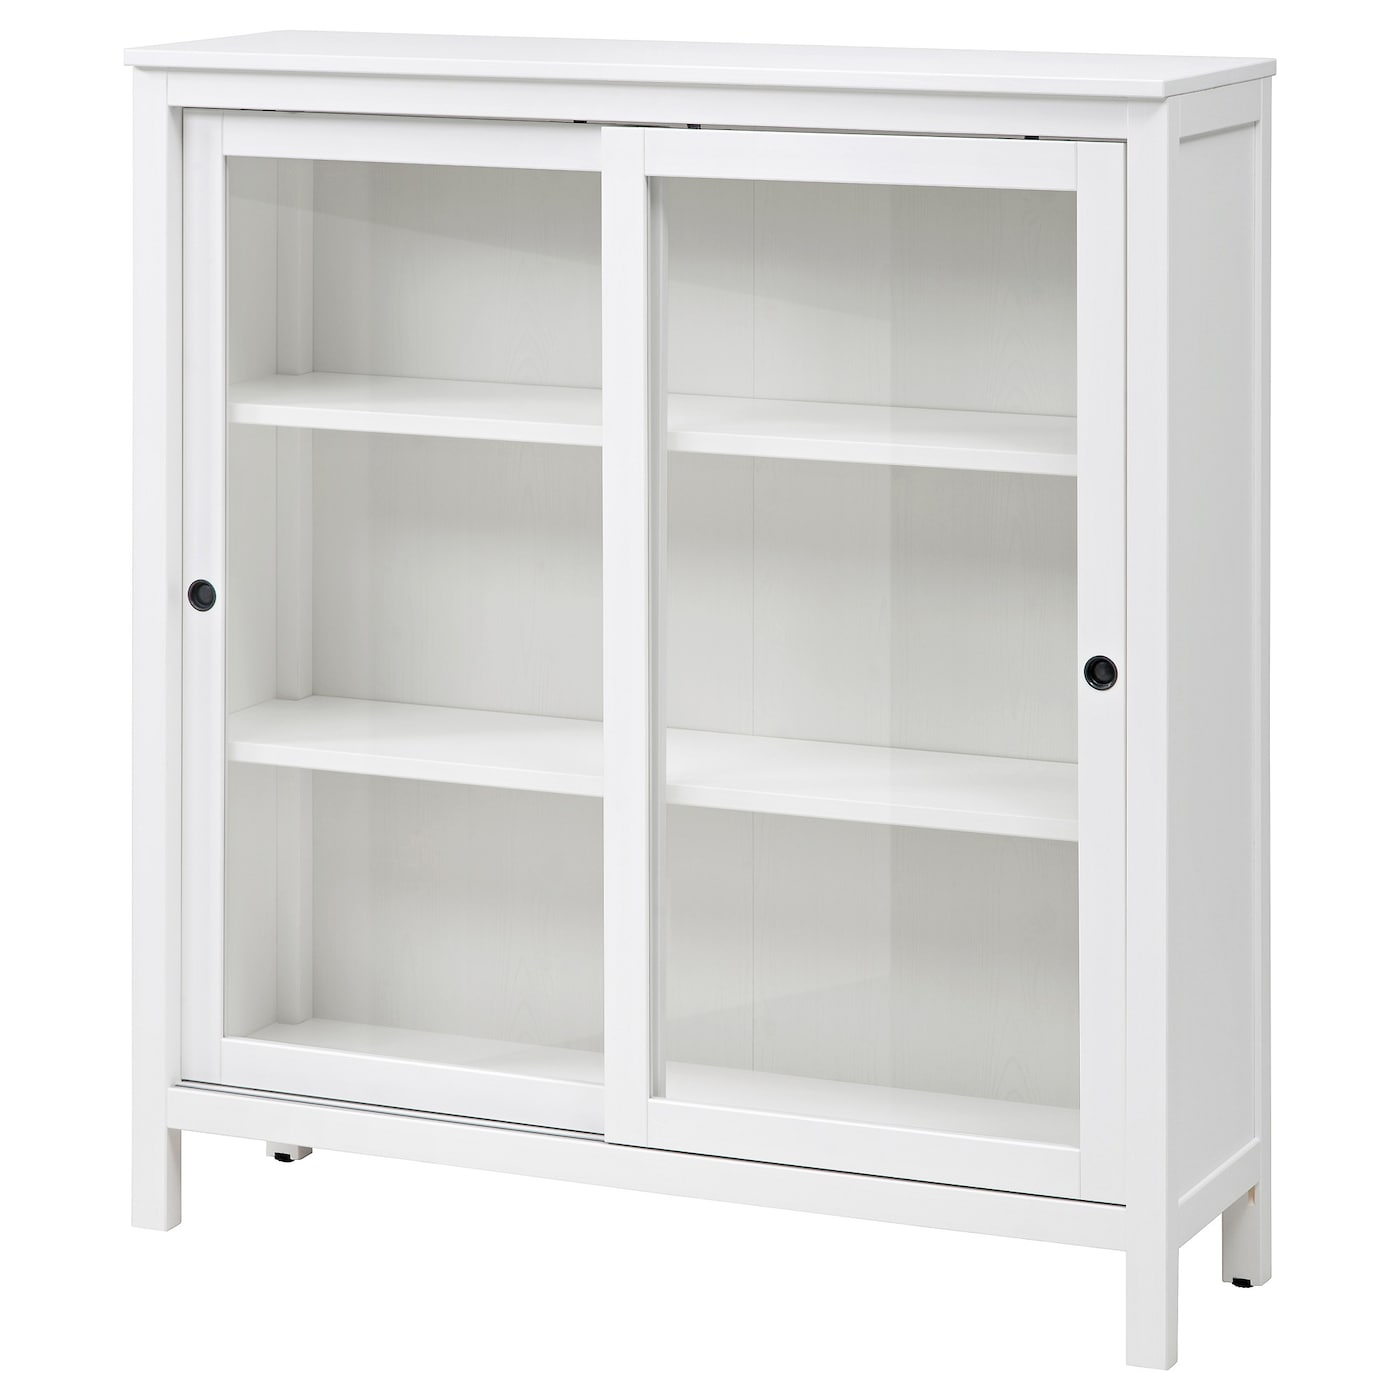 Hemnes Glass Door Cabinet White Stain 120x130 Cm Ikea